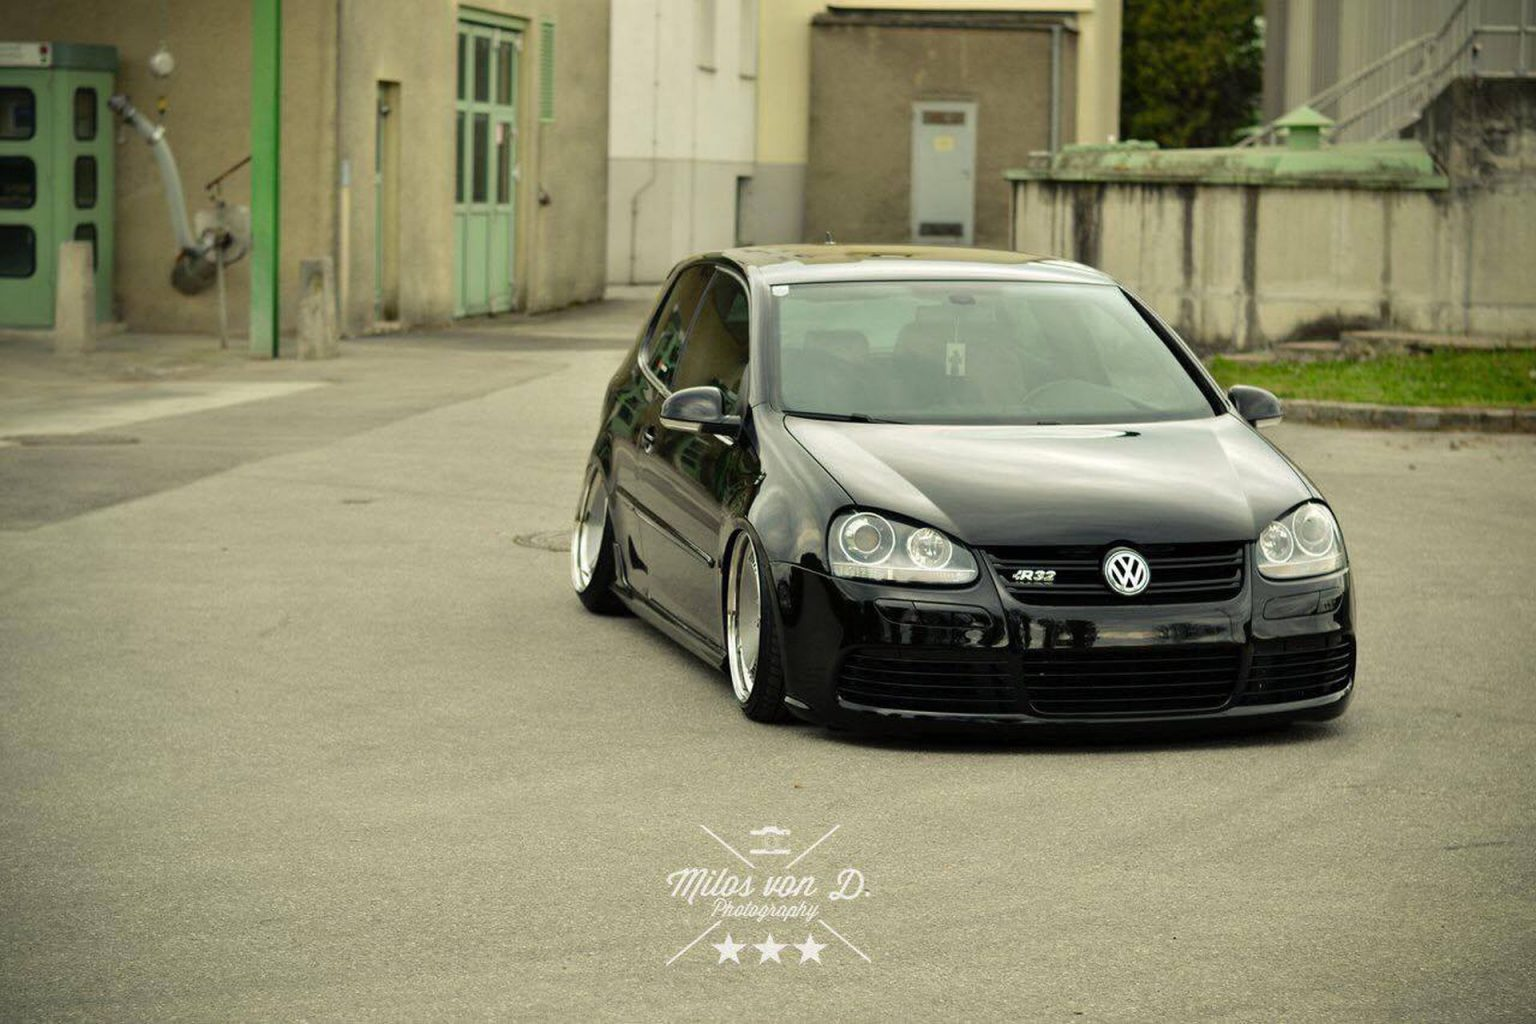 vw golf 5 r32 felgen von schmidt th line schmidt felgen. Black Bedroom Furniture Sets. Home Design Ideas